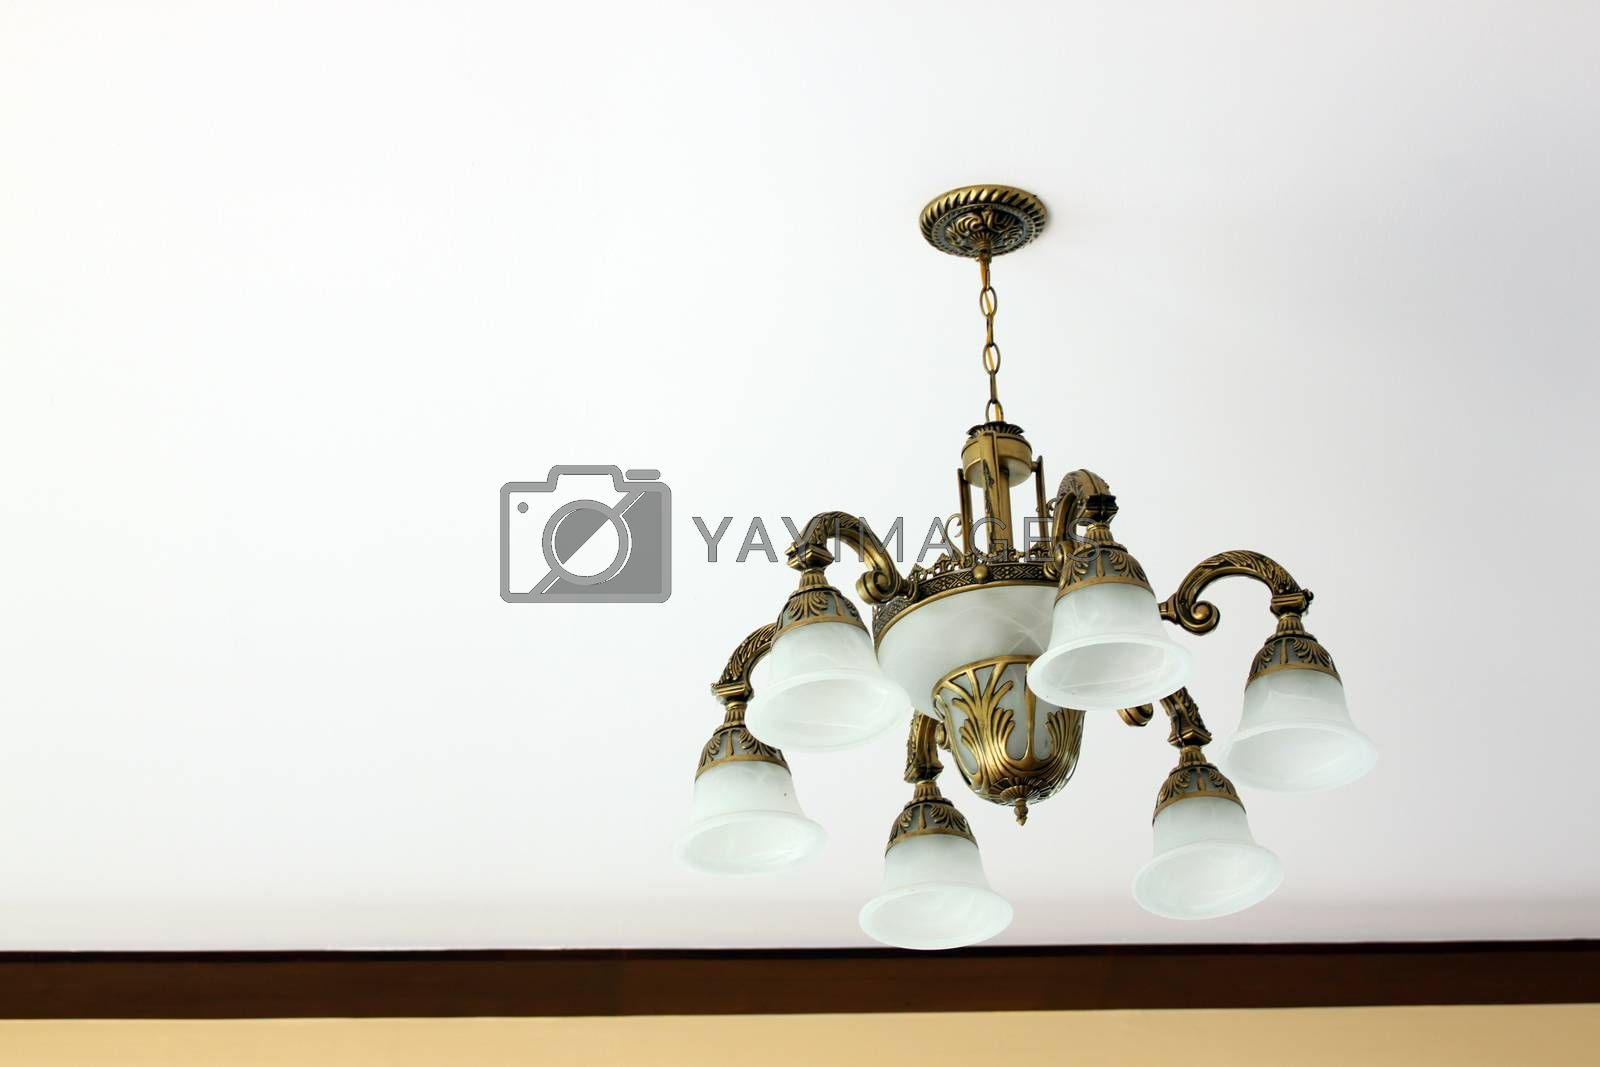 Modern ceiling lamp for interiors.